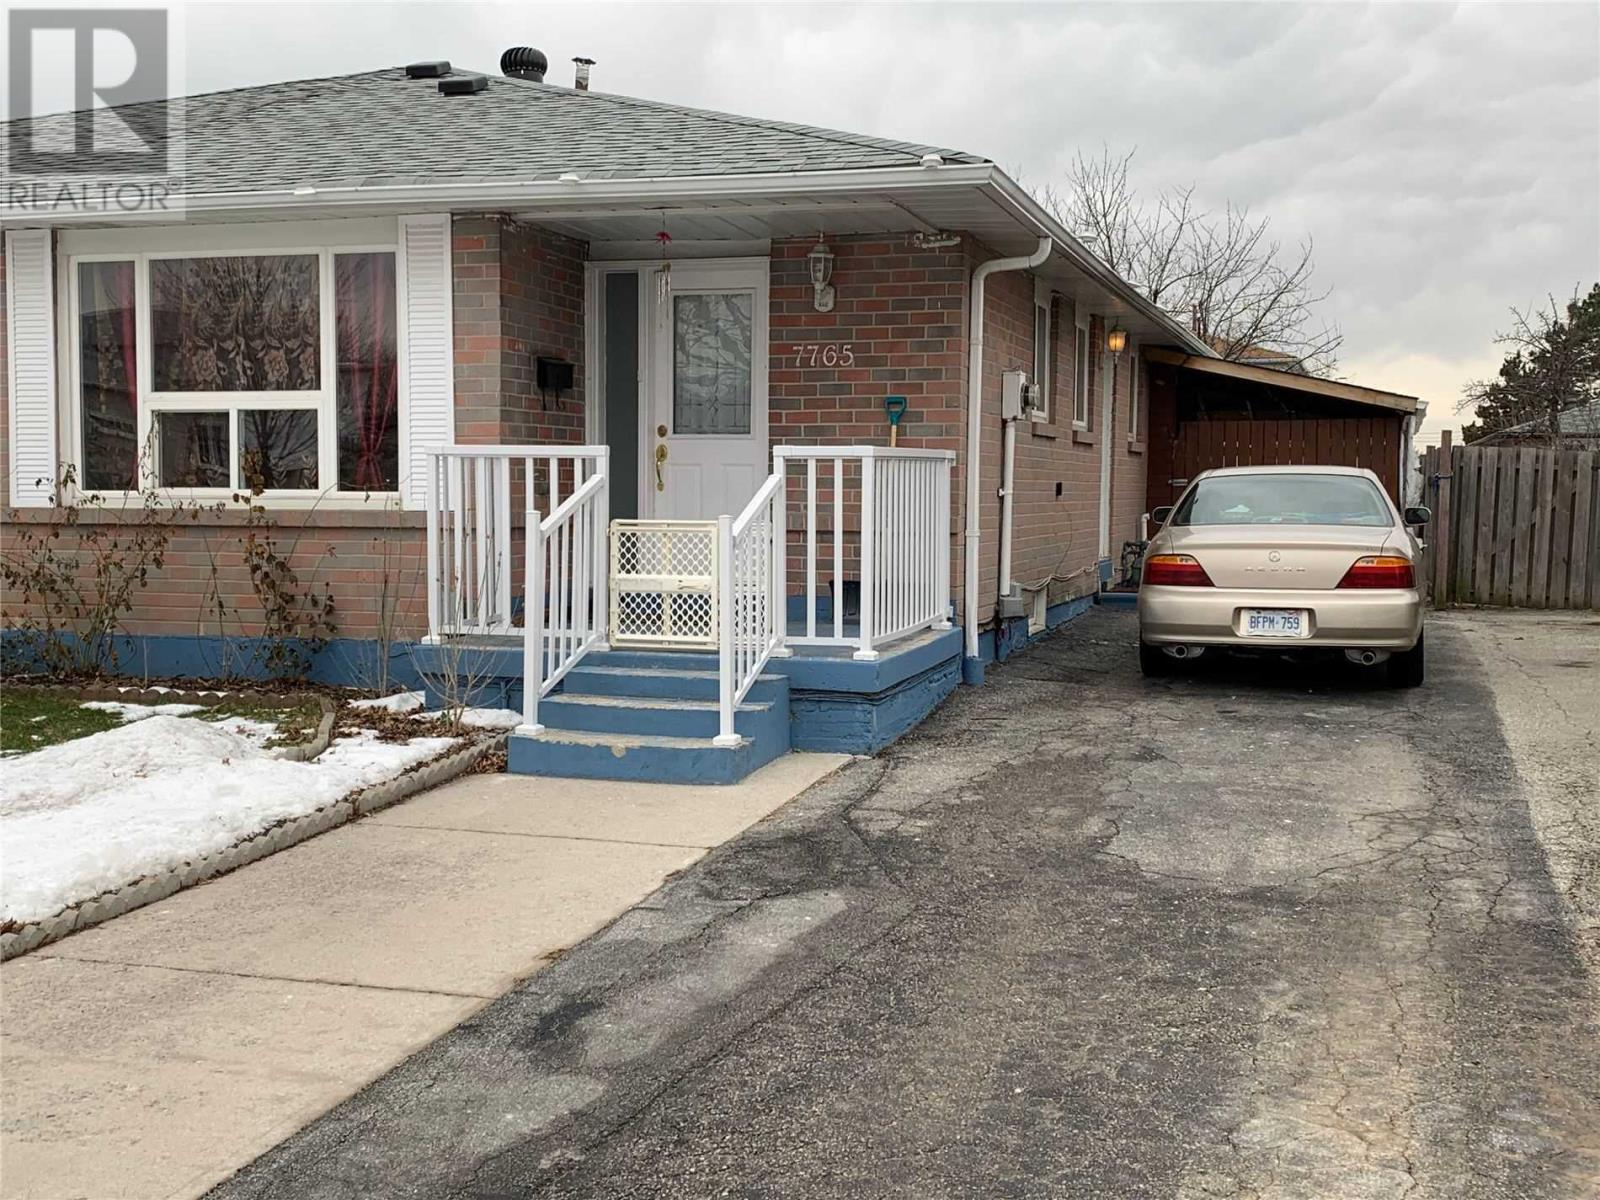 7765 Anaka Dr, Mississauga, Ontario  L4T 3H8 - Photo 1 - W4679803